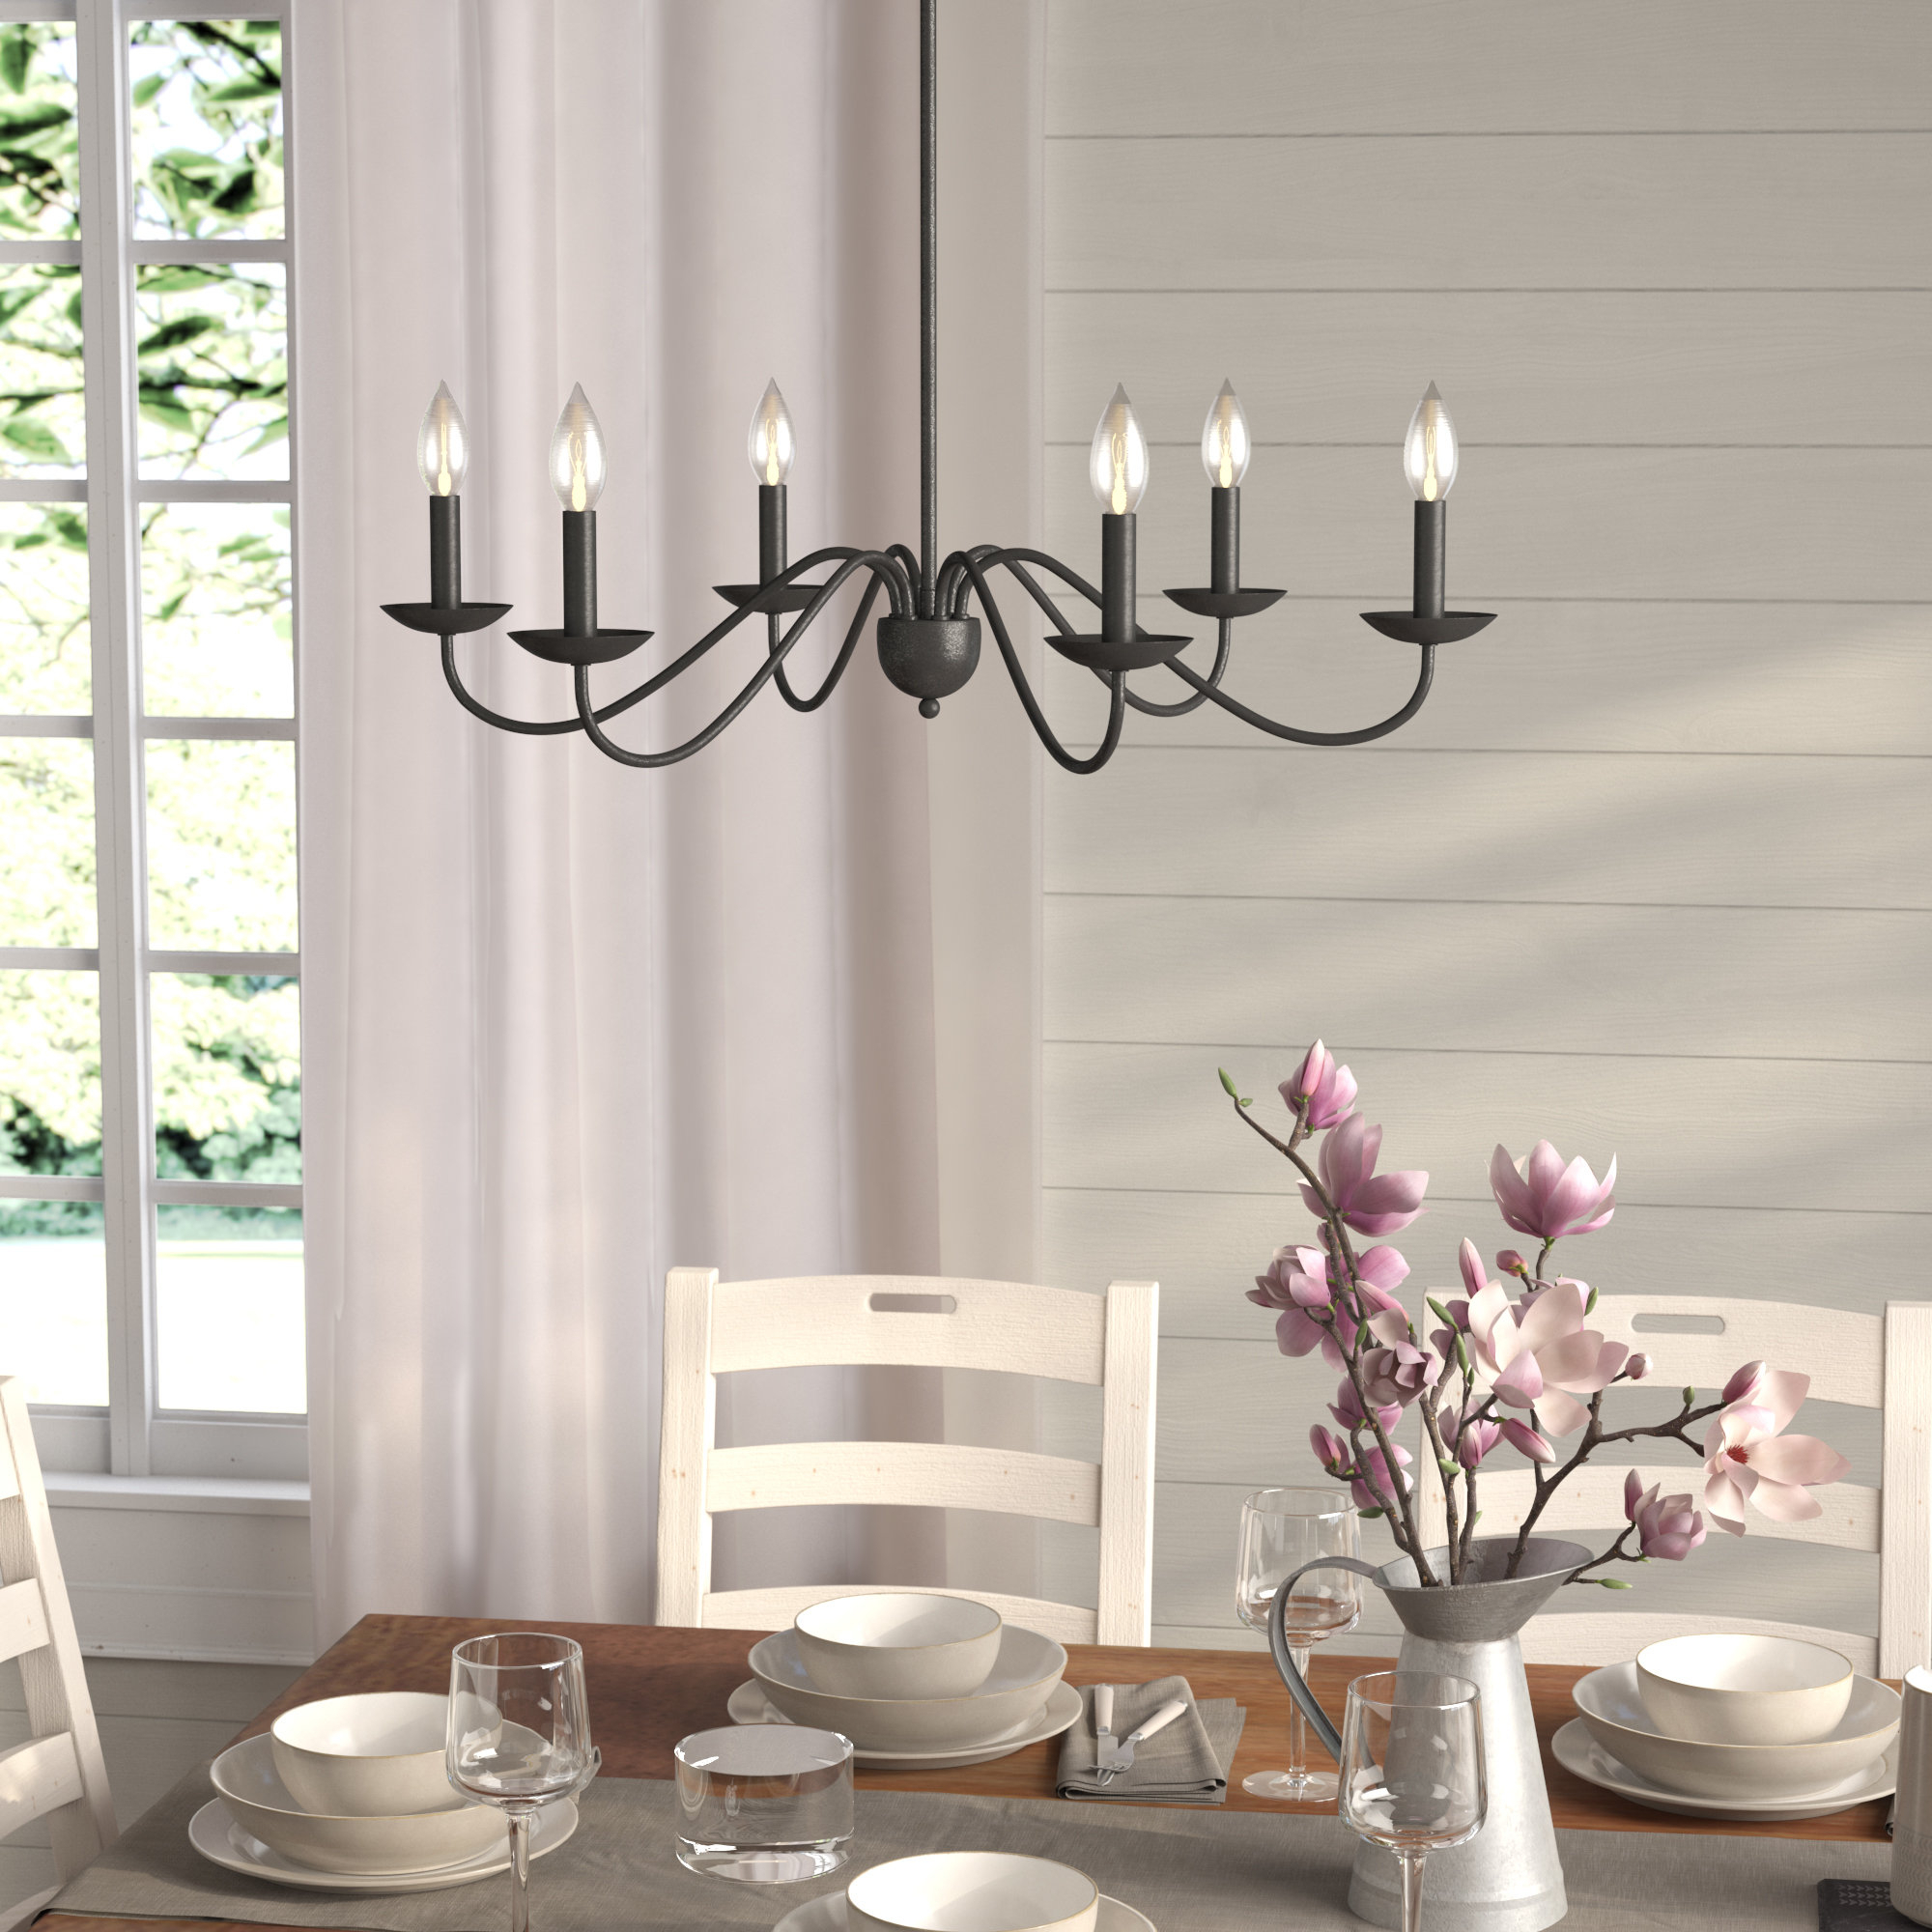 Hamza 6 Light Candle Style Chandeliers Intended For Favorite Perseus 6 Light Candle Style Chandelier (View 9 of 20)